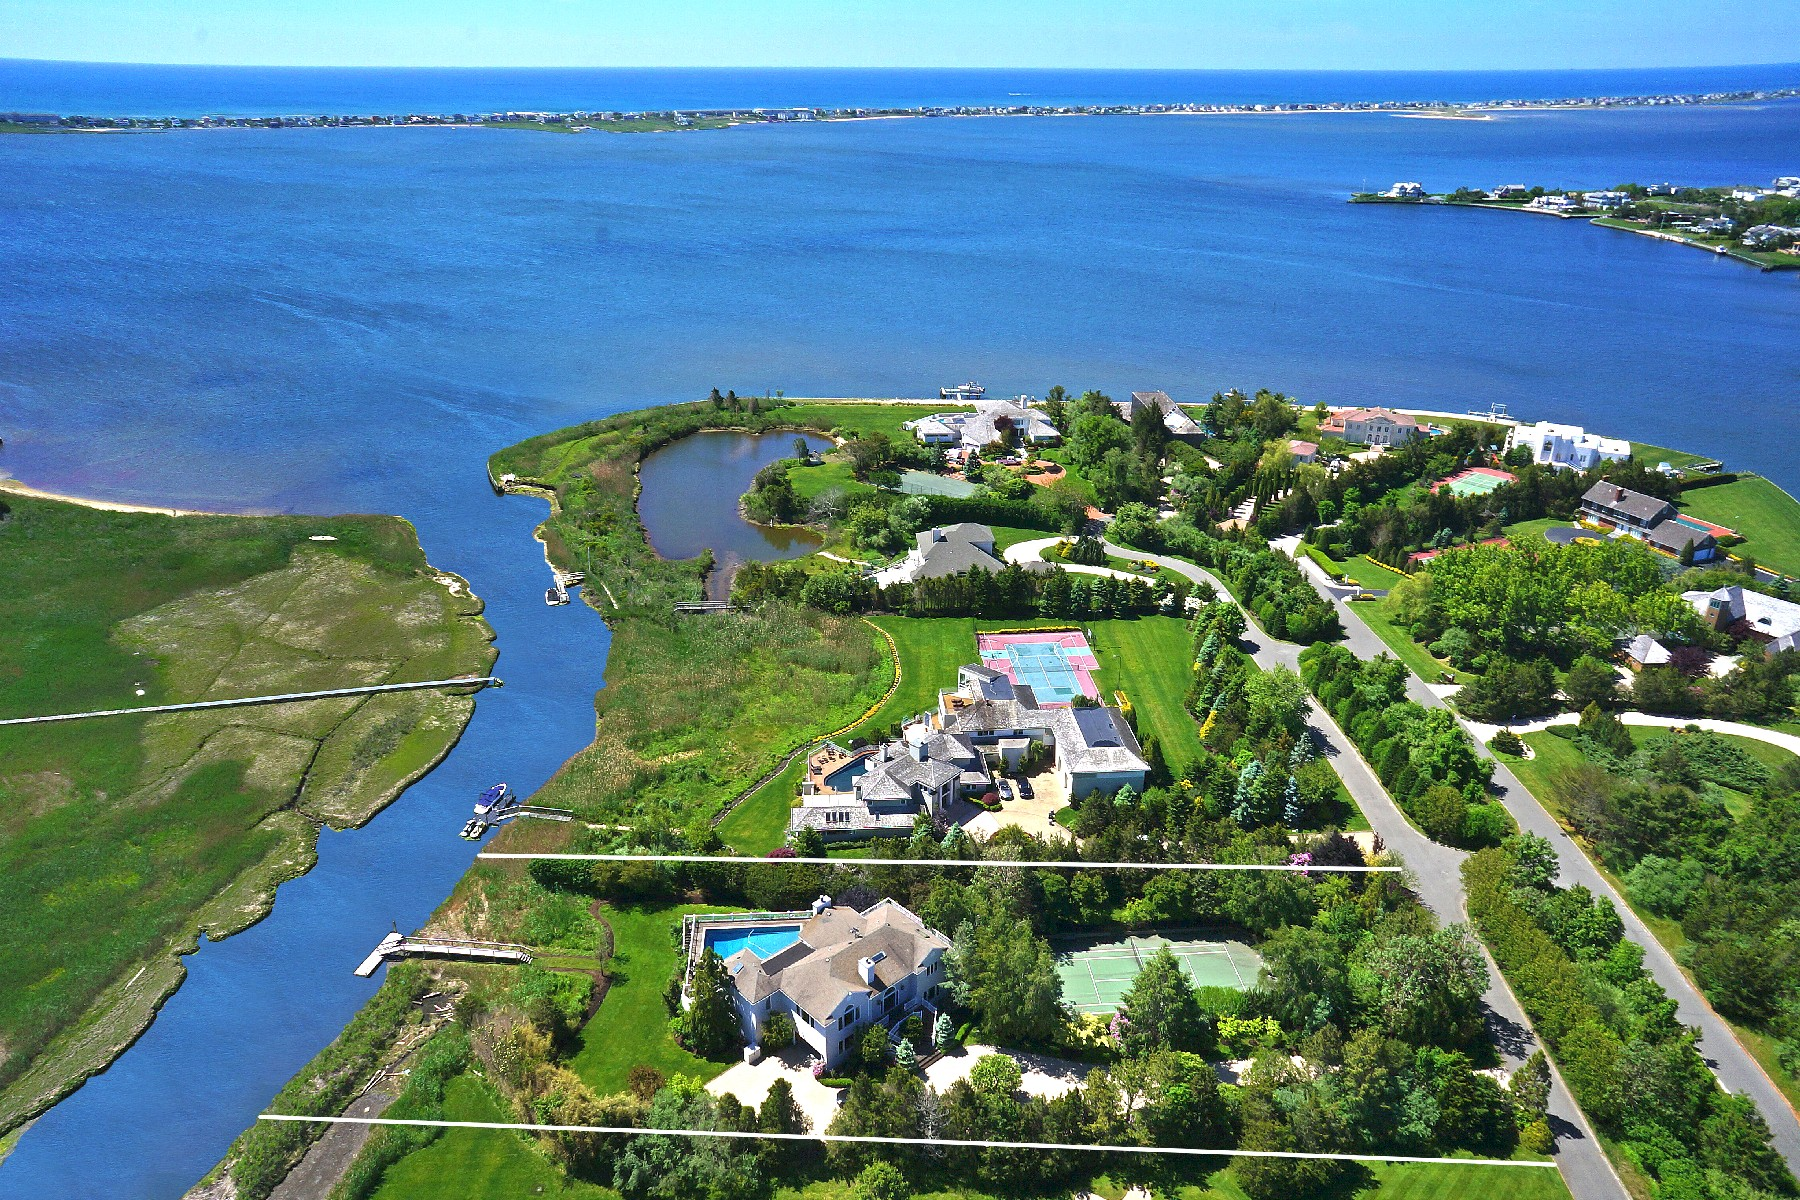 Single Family Home for Sale at Waterfront - Dock-Pool-Tennis 12 Pine Tree Lane Westhampton, New York 11977 United States